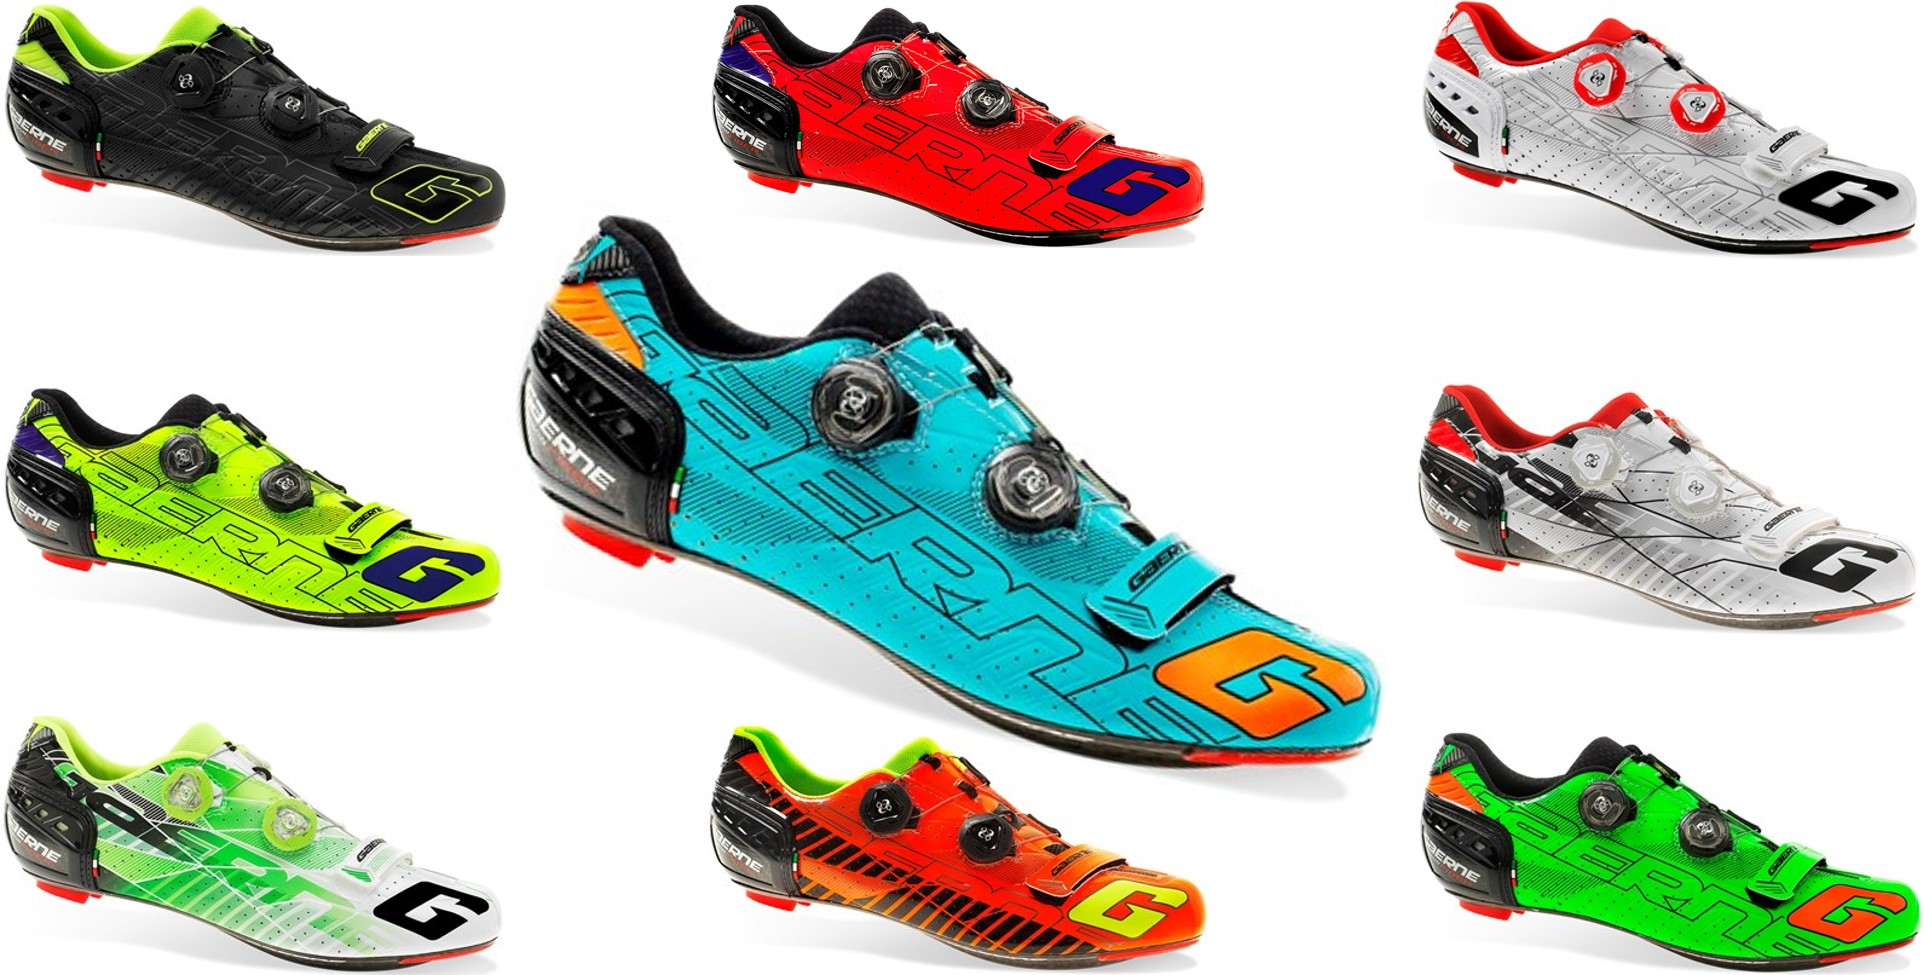 The Best Road Cycling Shoes In The Know Cycling